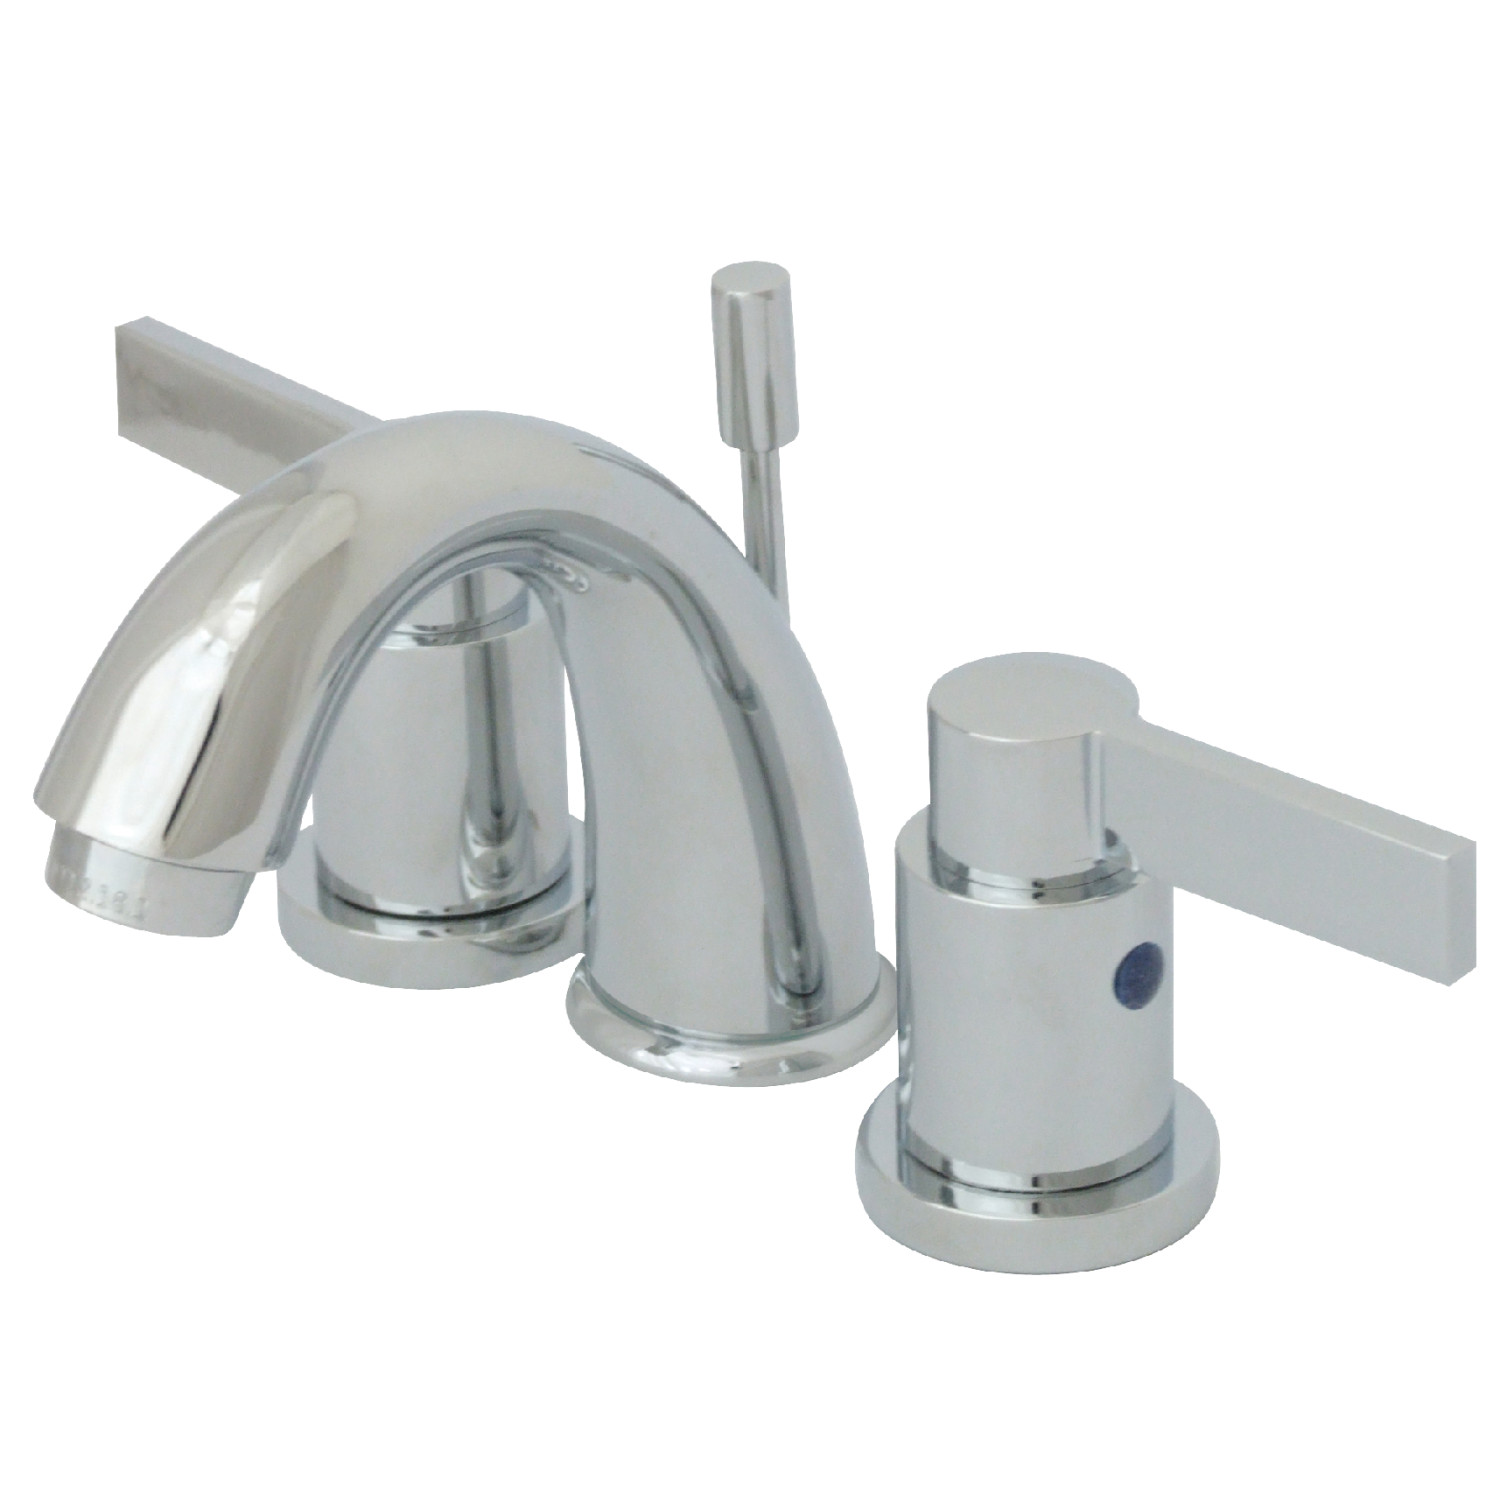 Modern Two-Handle 3-Hole Deck Mounted Widespread Bathroom Faucet with Plastic Pop-Up in Polished Chrome with 4 Color Option